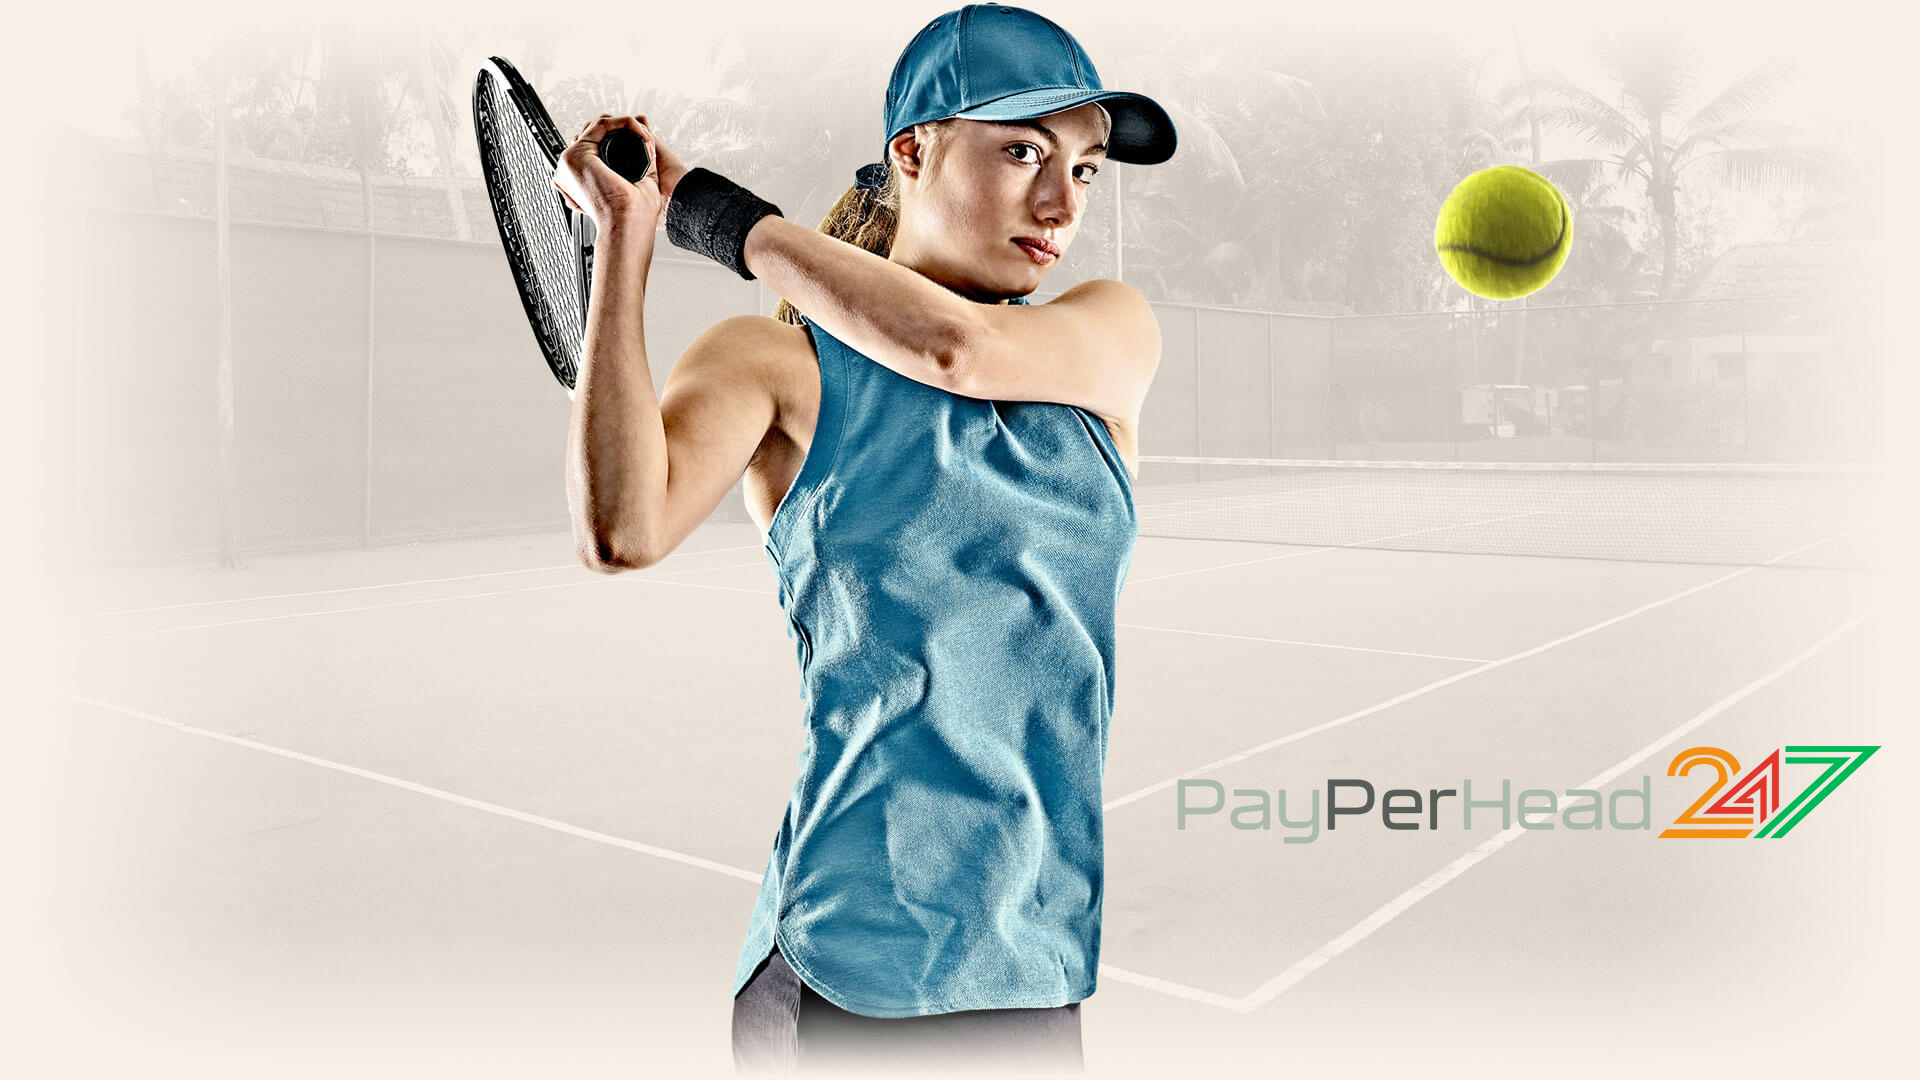 PayPerHead247 Offers Affordable Premium Bookie Services